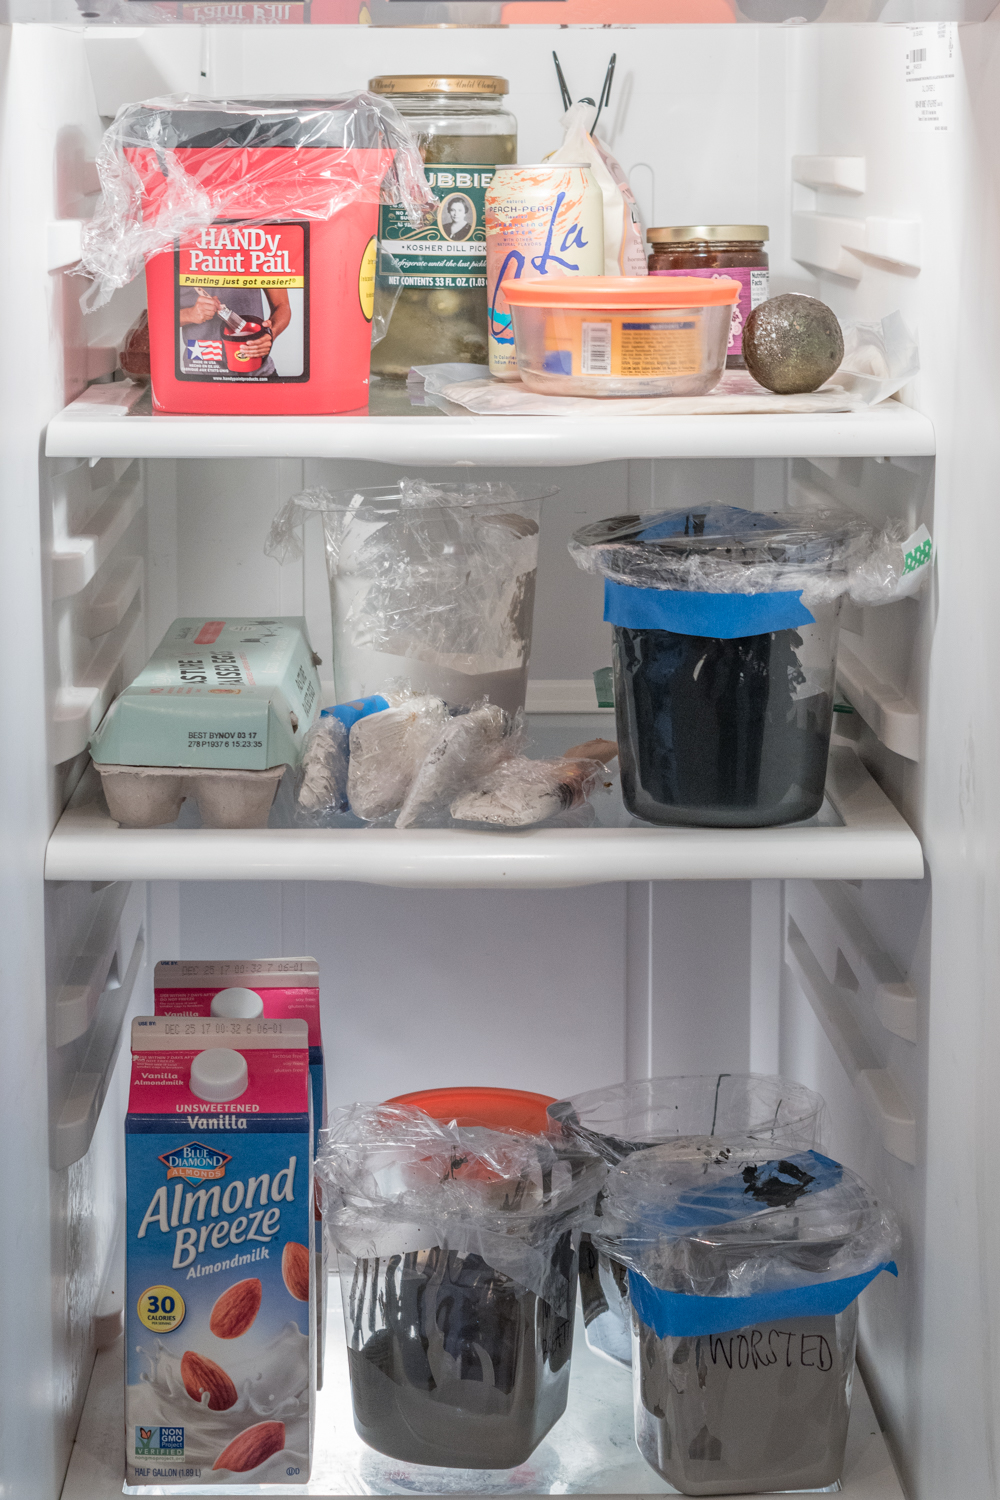 How to store paint in the fridge